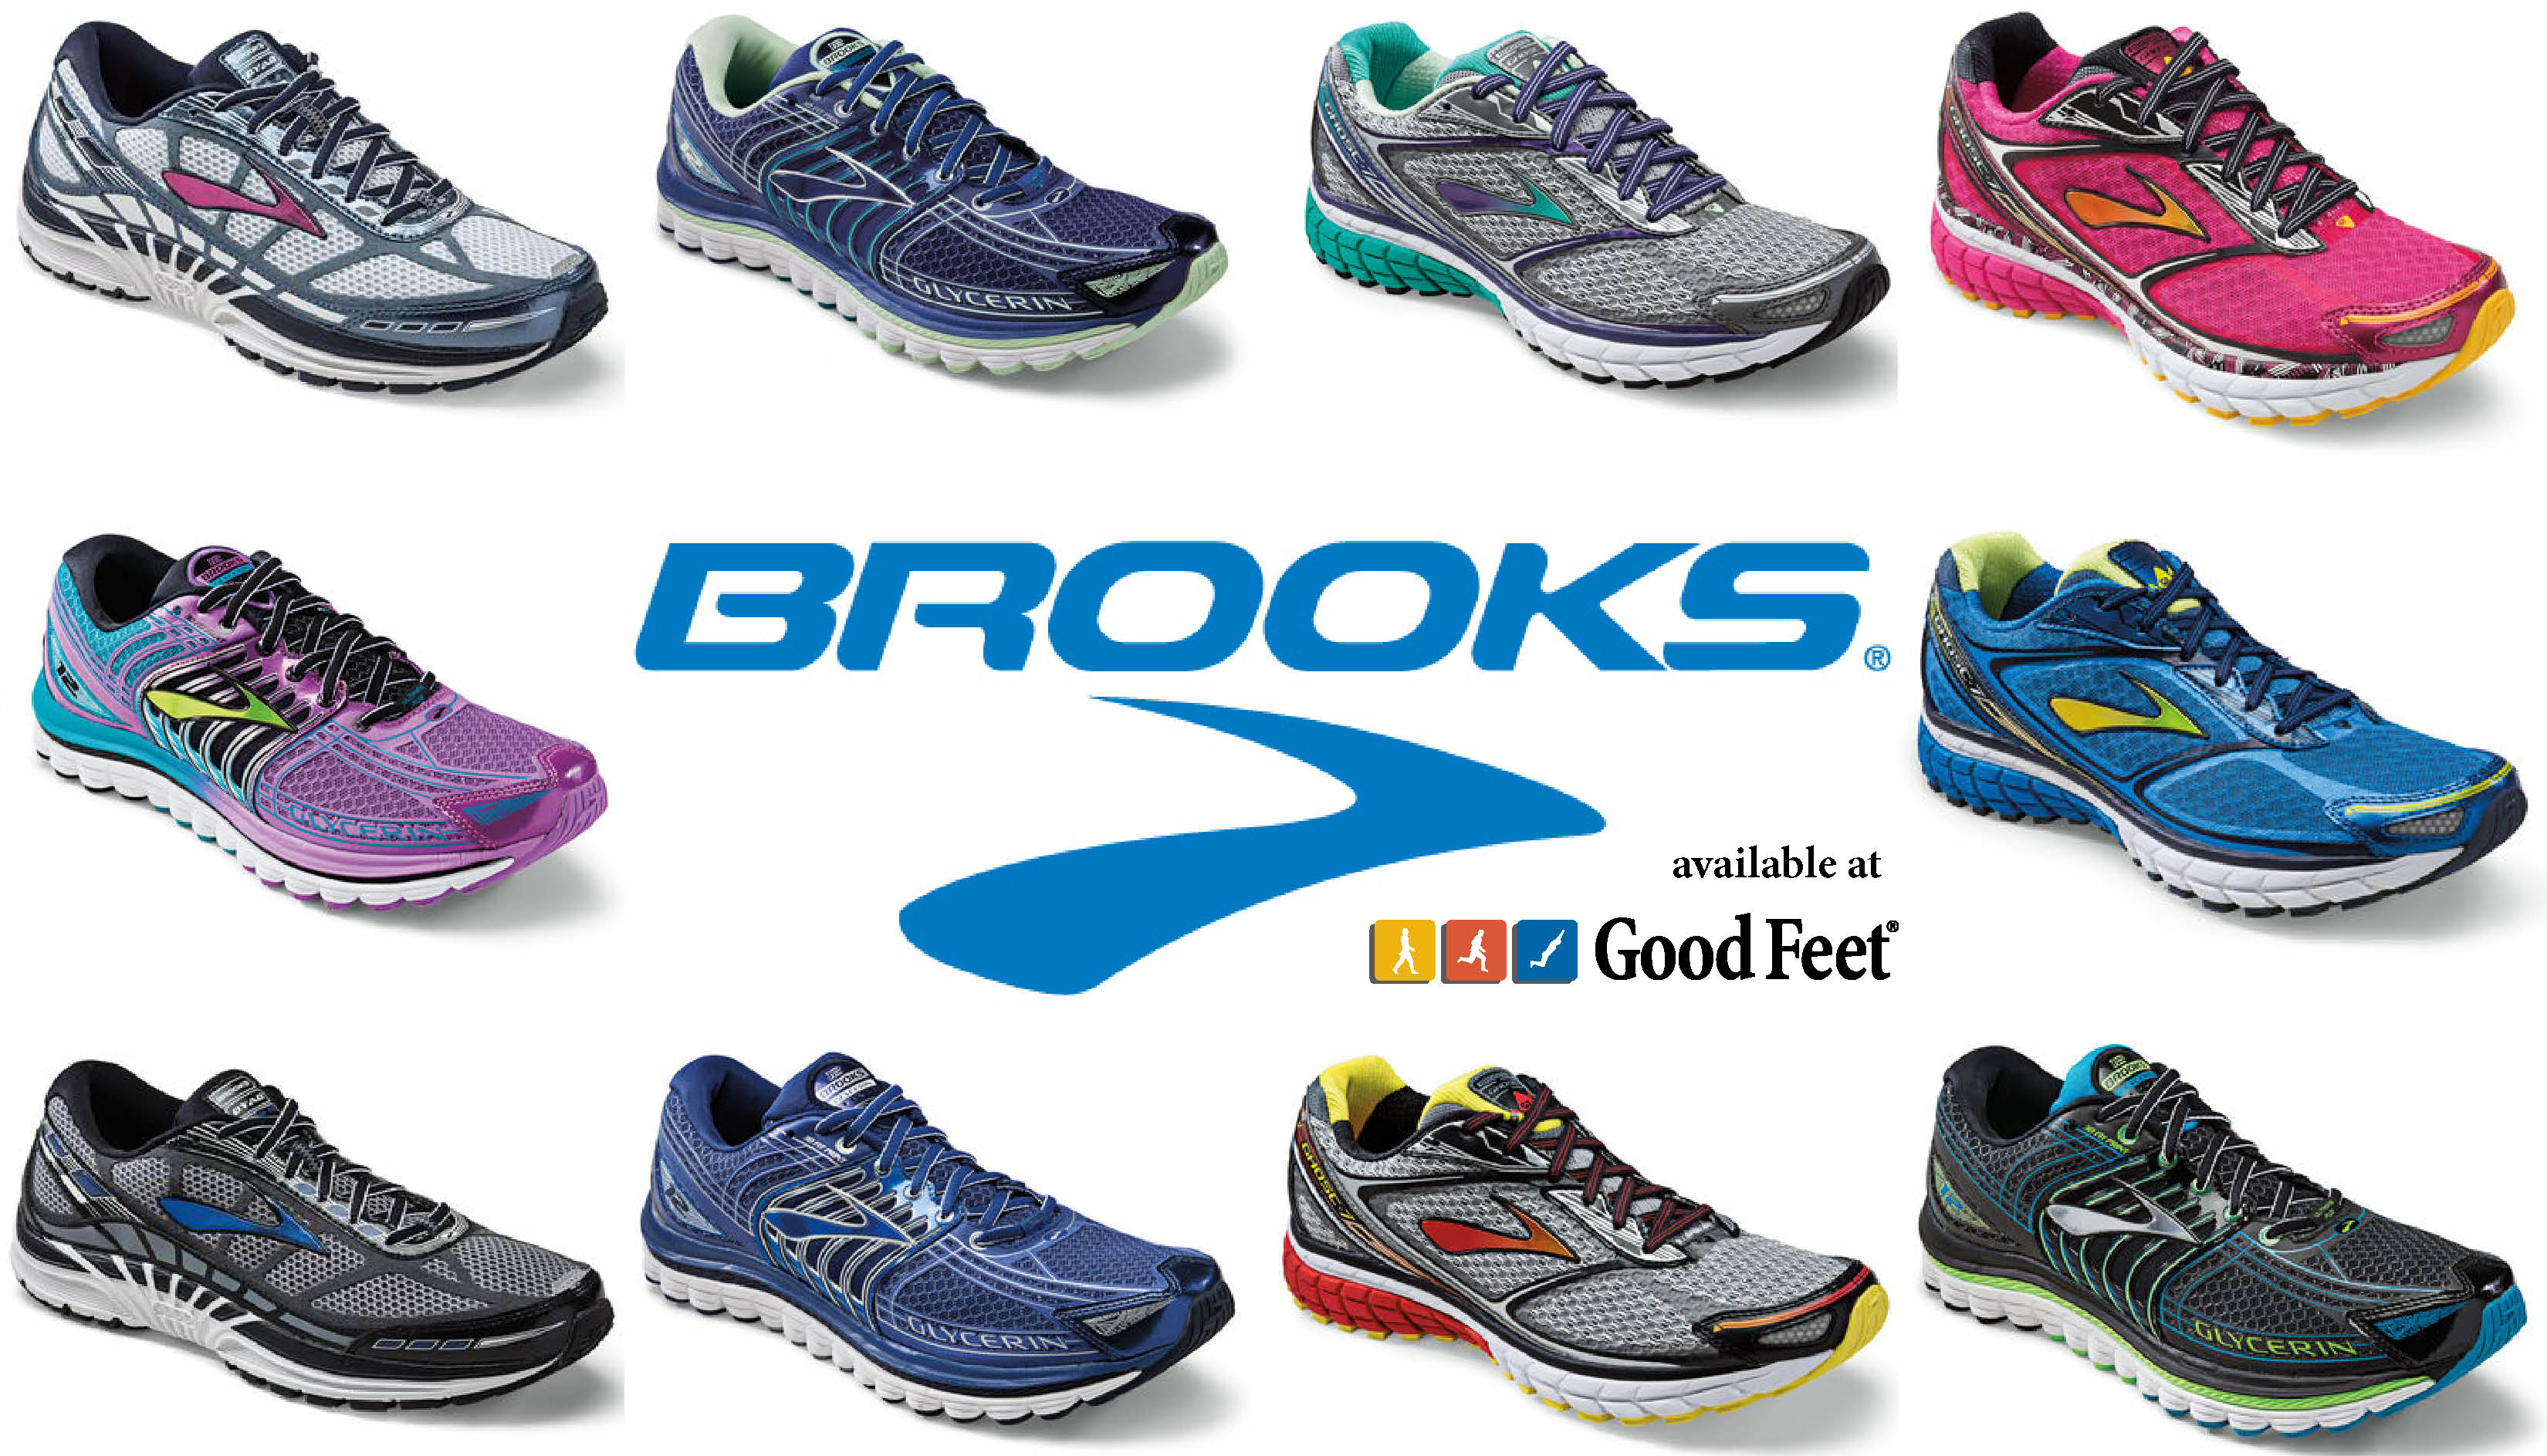 New Brooks Shoes At